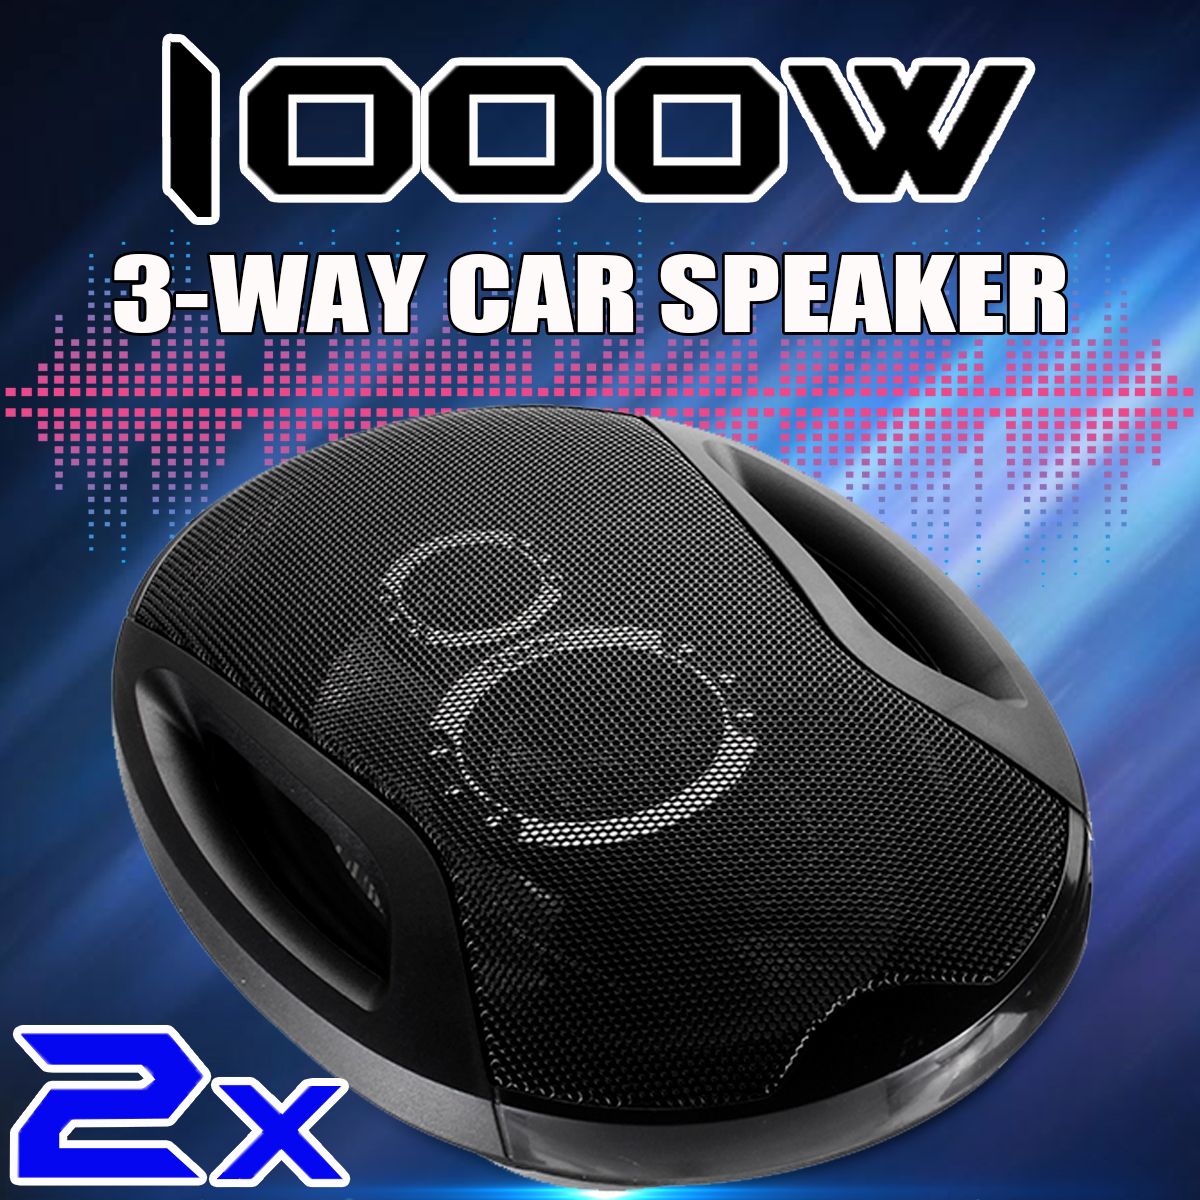 2pcs 12V 1000W 6x9 inch 3-Way Twin Tone Auto Car Door Shelf Coaxial Speakers High Frequency Hifi Car Audio Subwoofer Speaker2pcs 12V 1000W 6x9 inch 3-Way Twin Tone Auto Car Door Shelf Coaxial Speakers High Frequency Hifi Car Audio Subwoofer Speaker